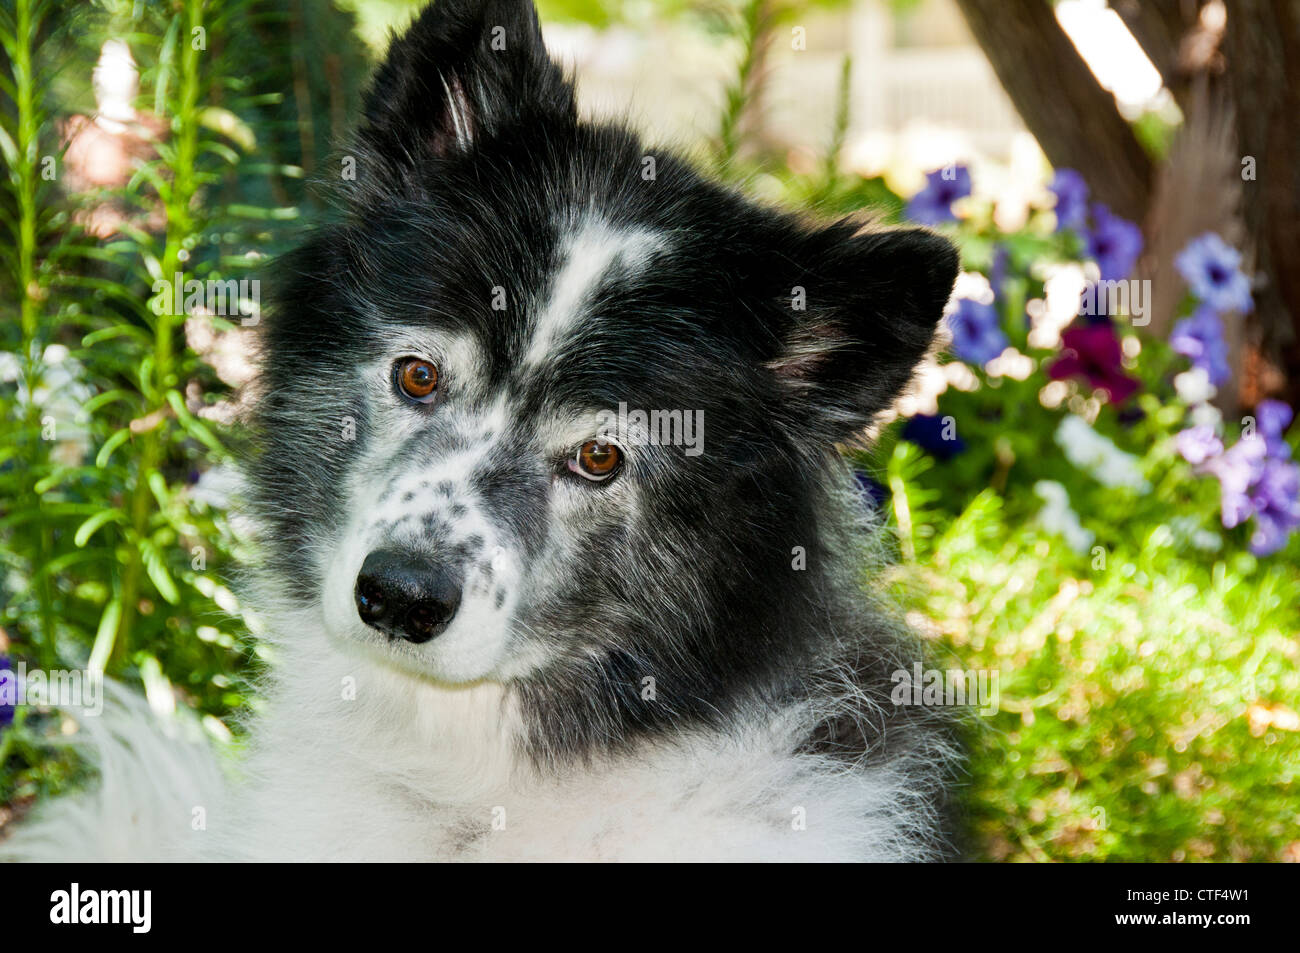 7-year old border collie - Stock Image